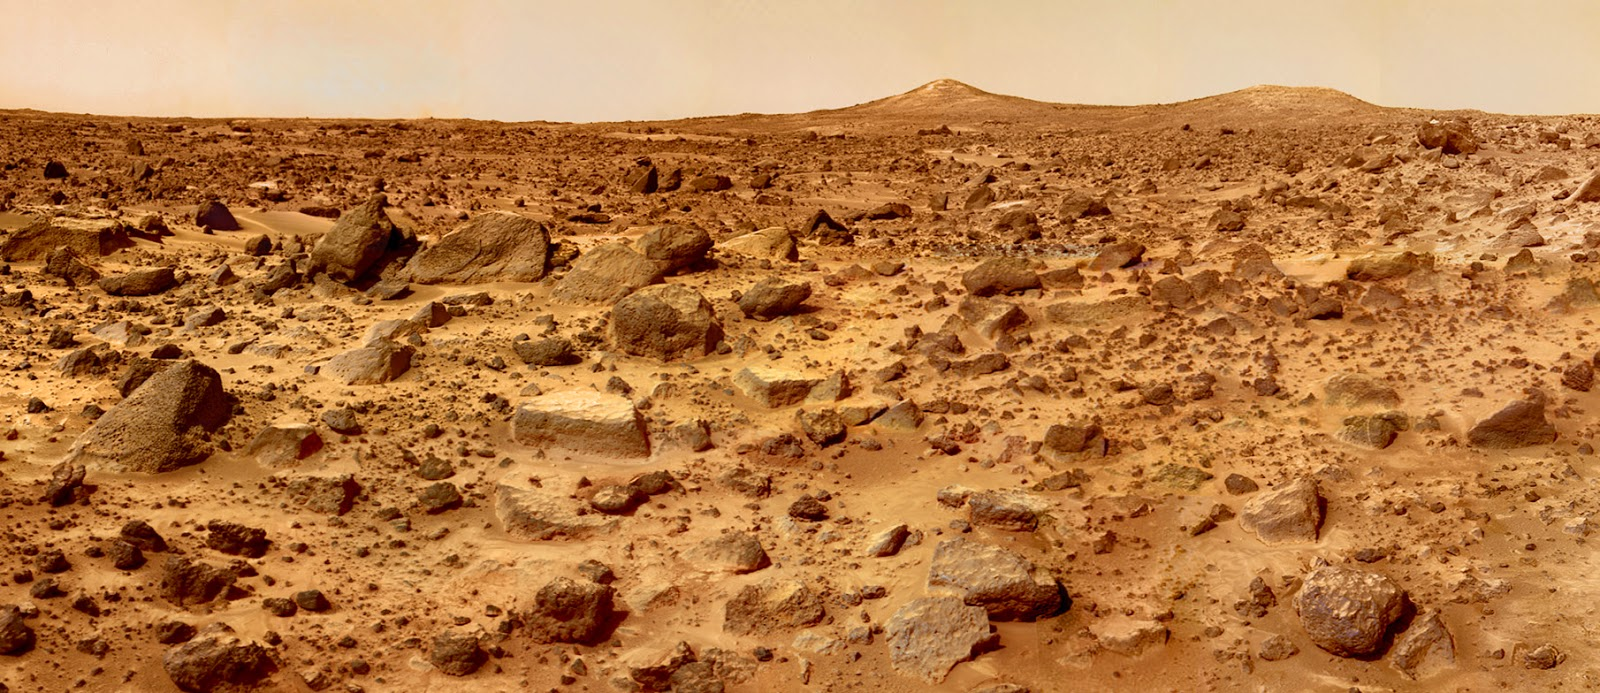 mars planet surface, mars planet climate